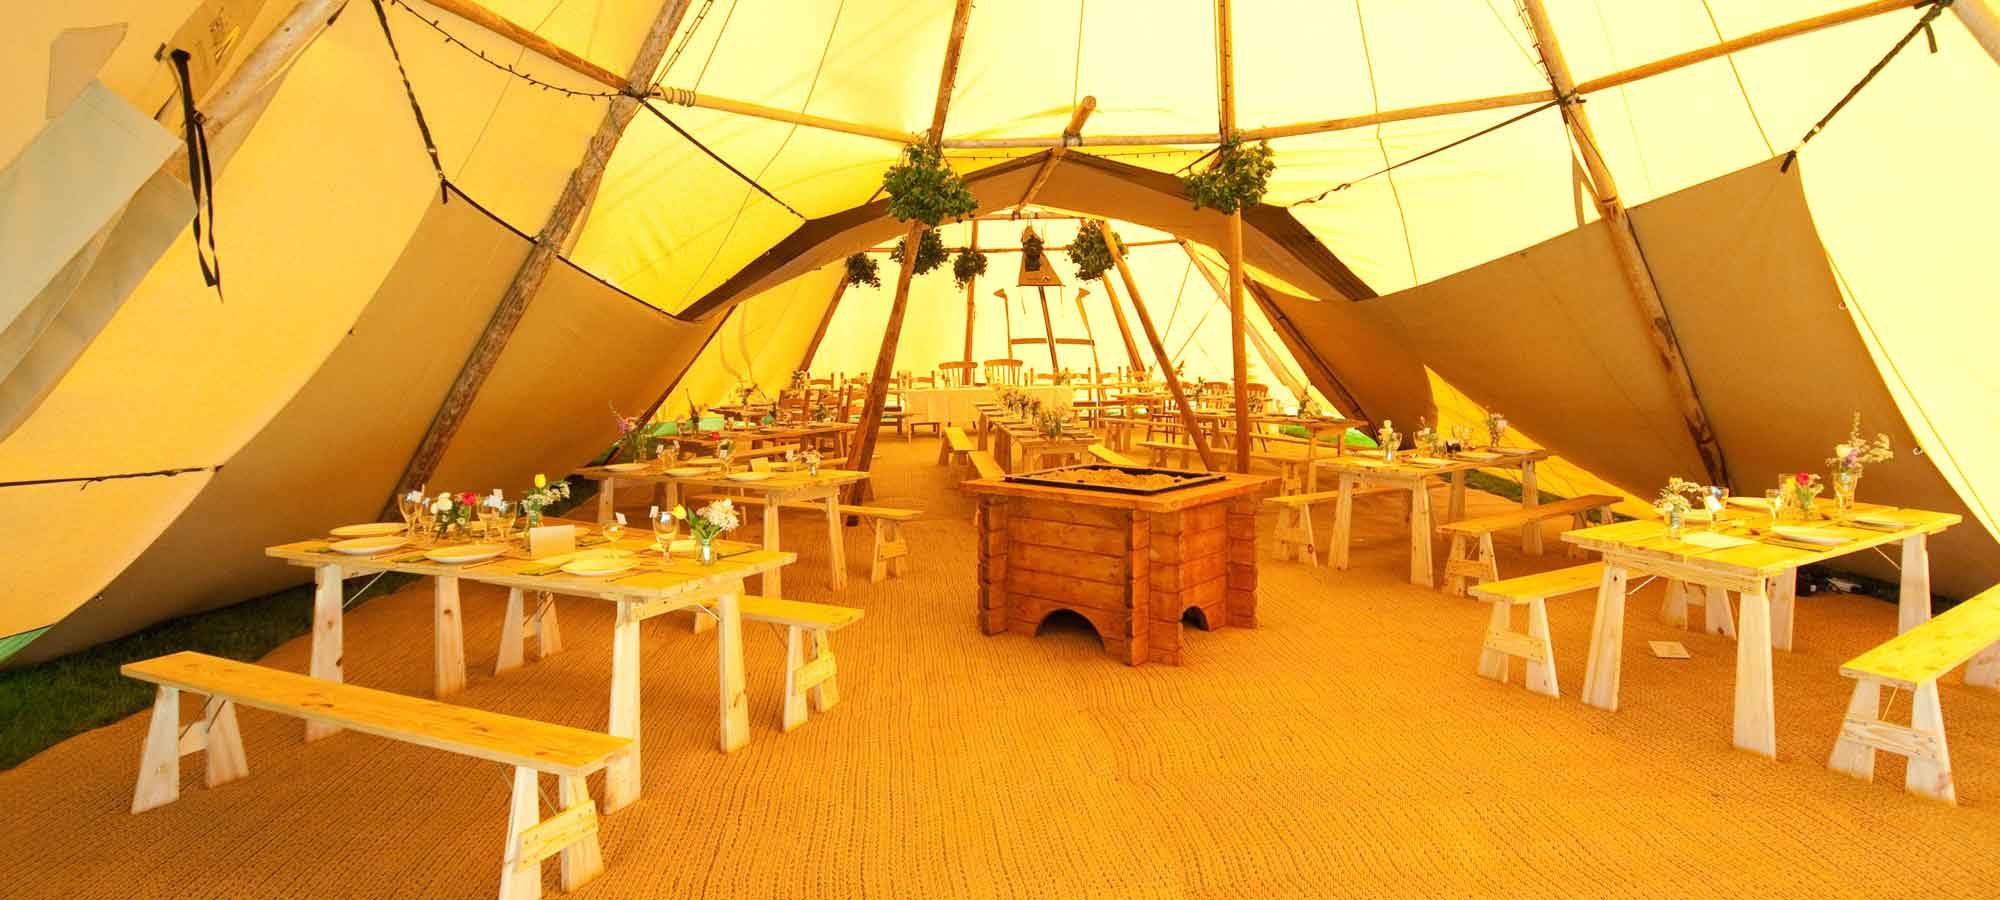 Tentipi tables and benches - buy giant tipis